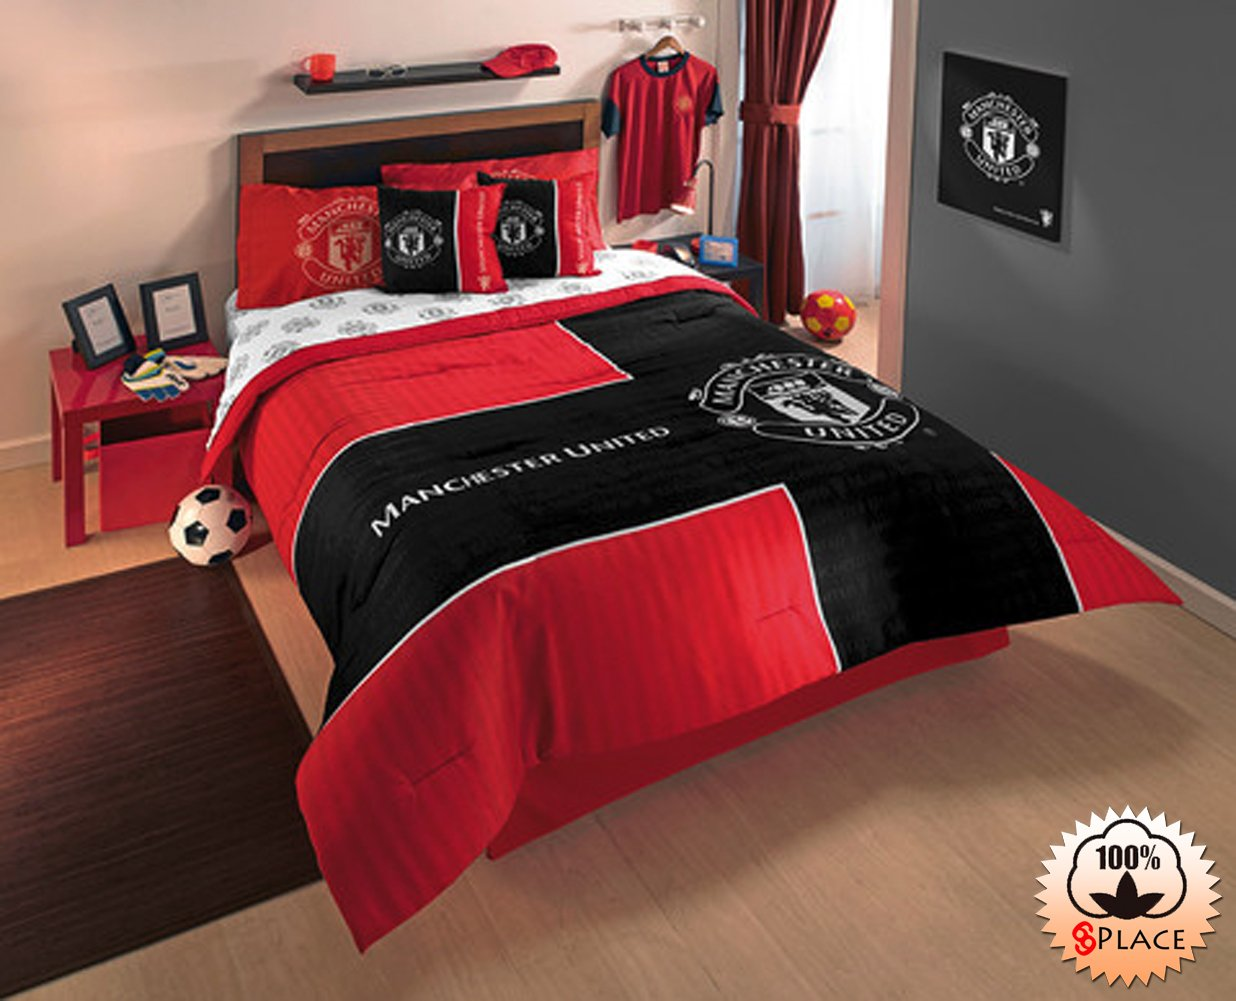 Manchester united bedroom ideas beautiful bedroom for Man u bedroom stuff